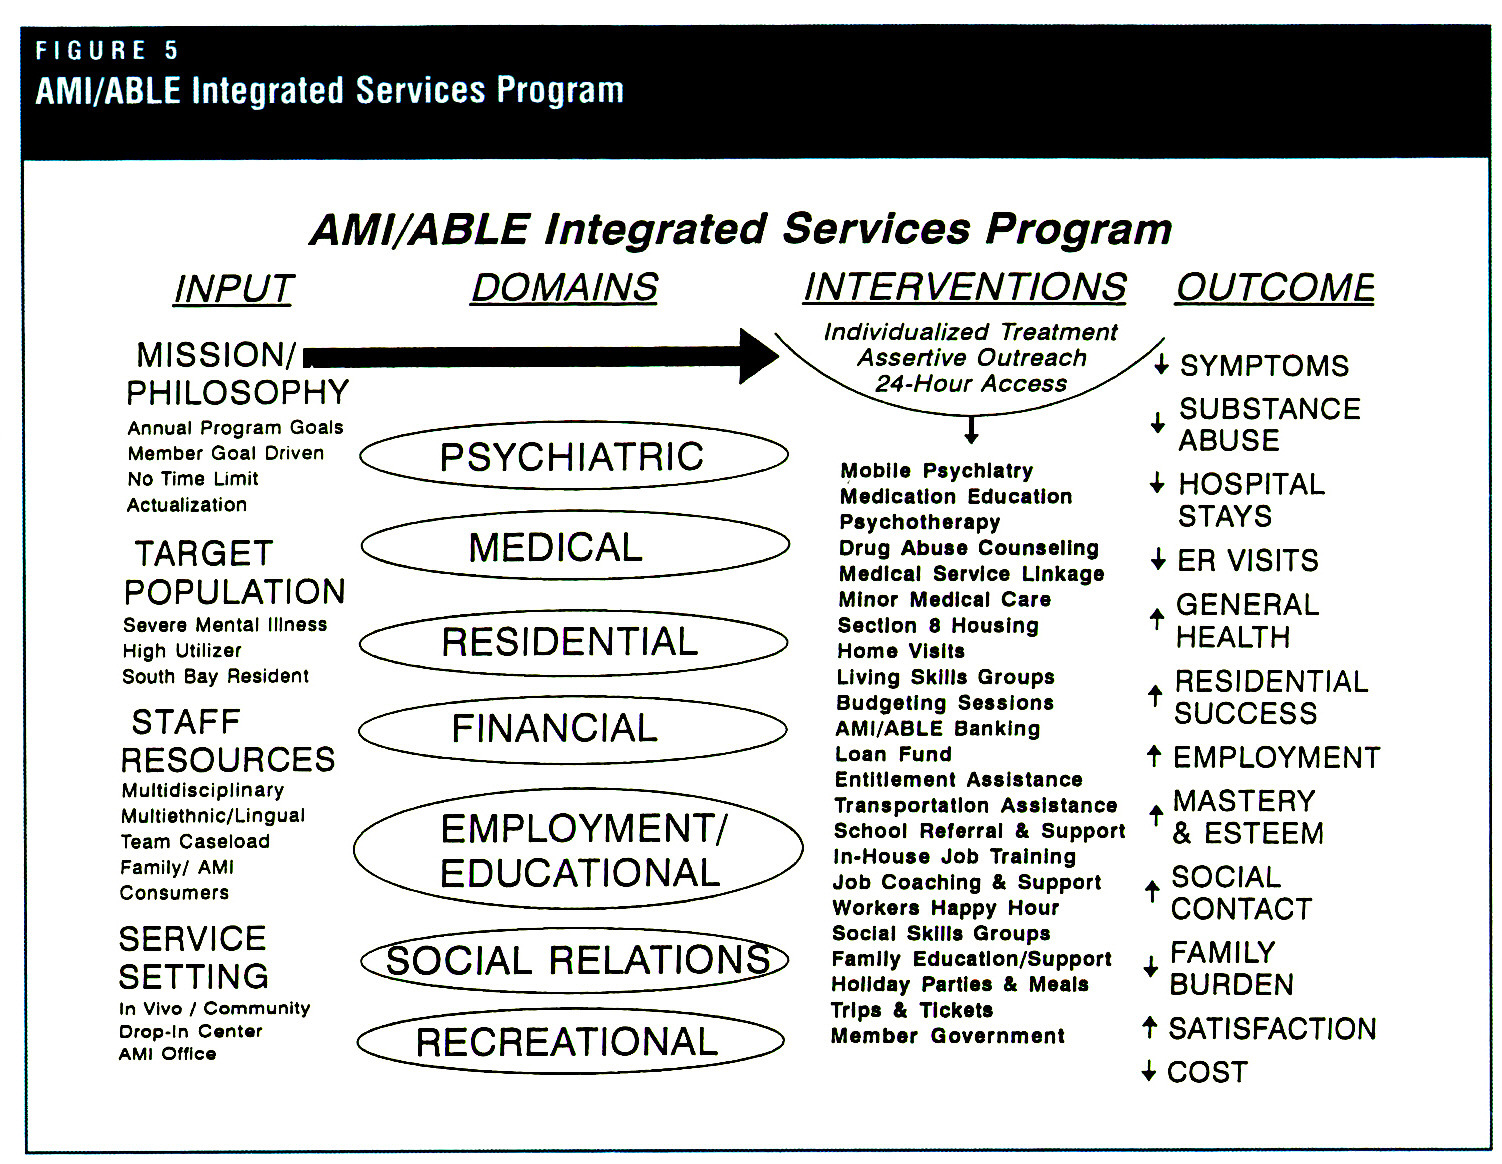 FIGURE 5AMI/ABLE Integrated Services Program